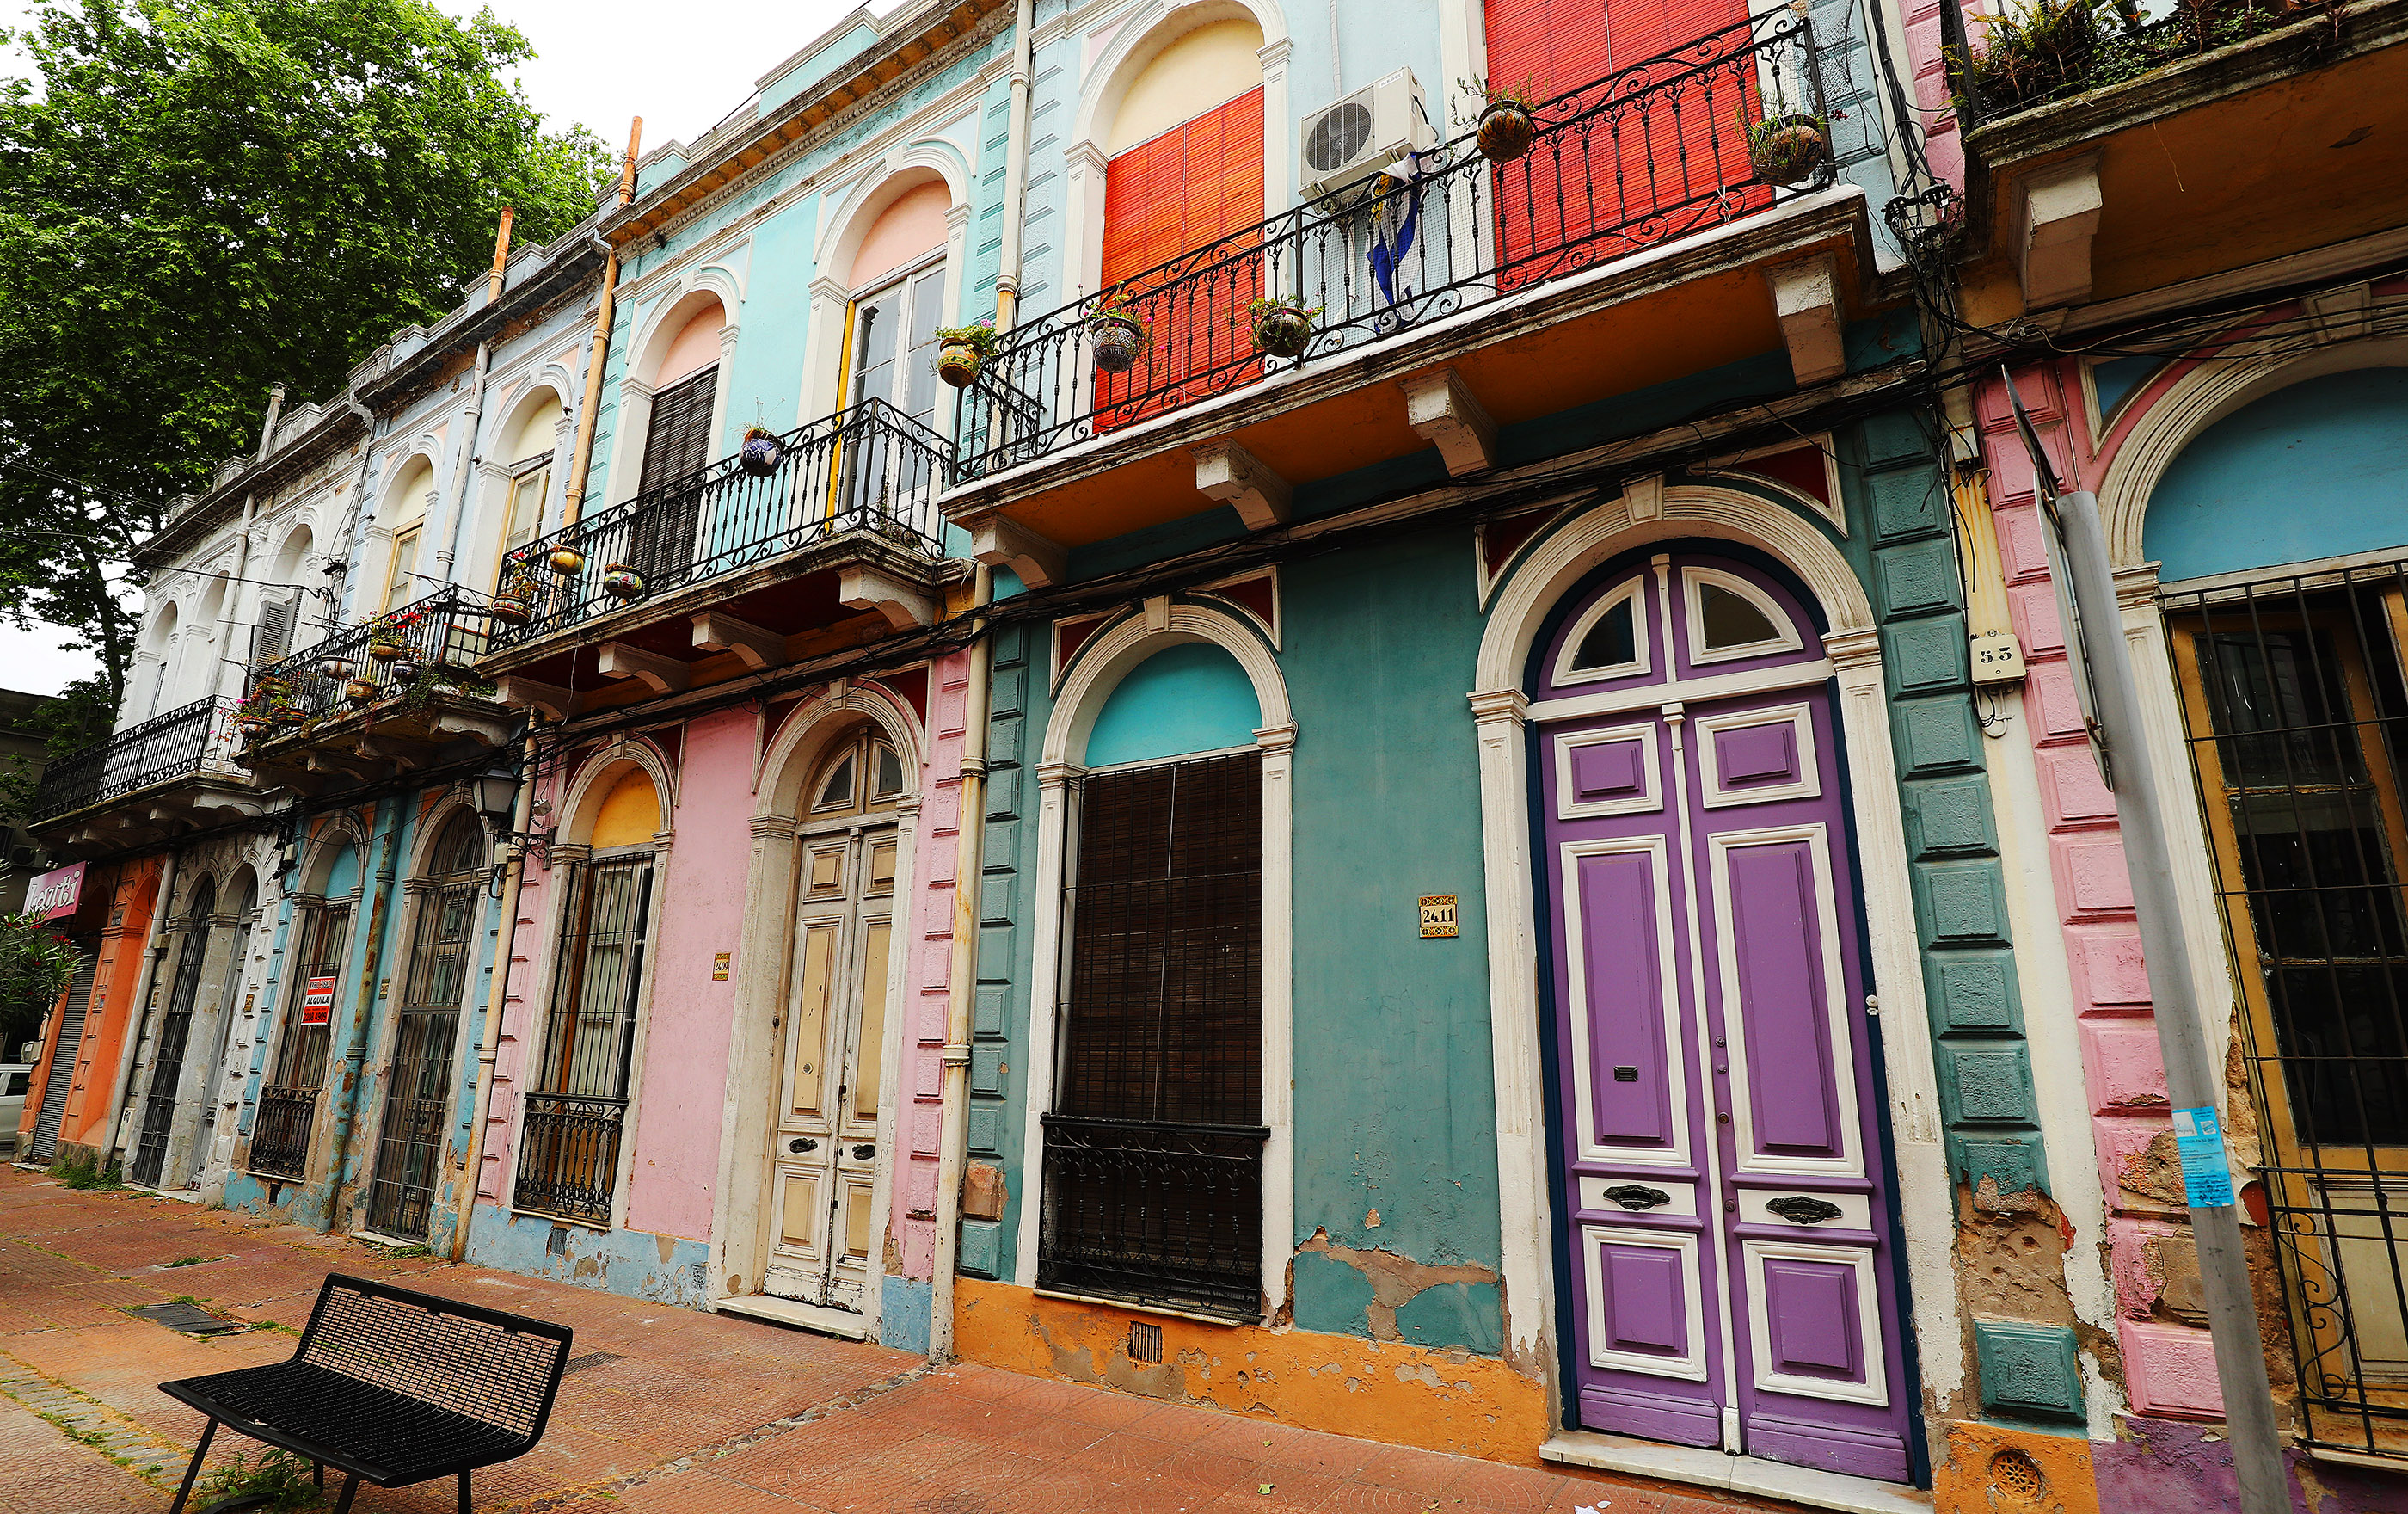 Barrio Reus has colorful homes in Montevideo, Uruguay, on Oct. 24, 2018.